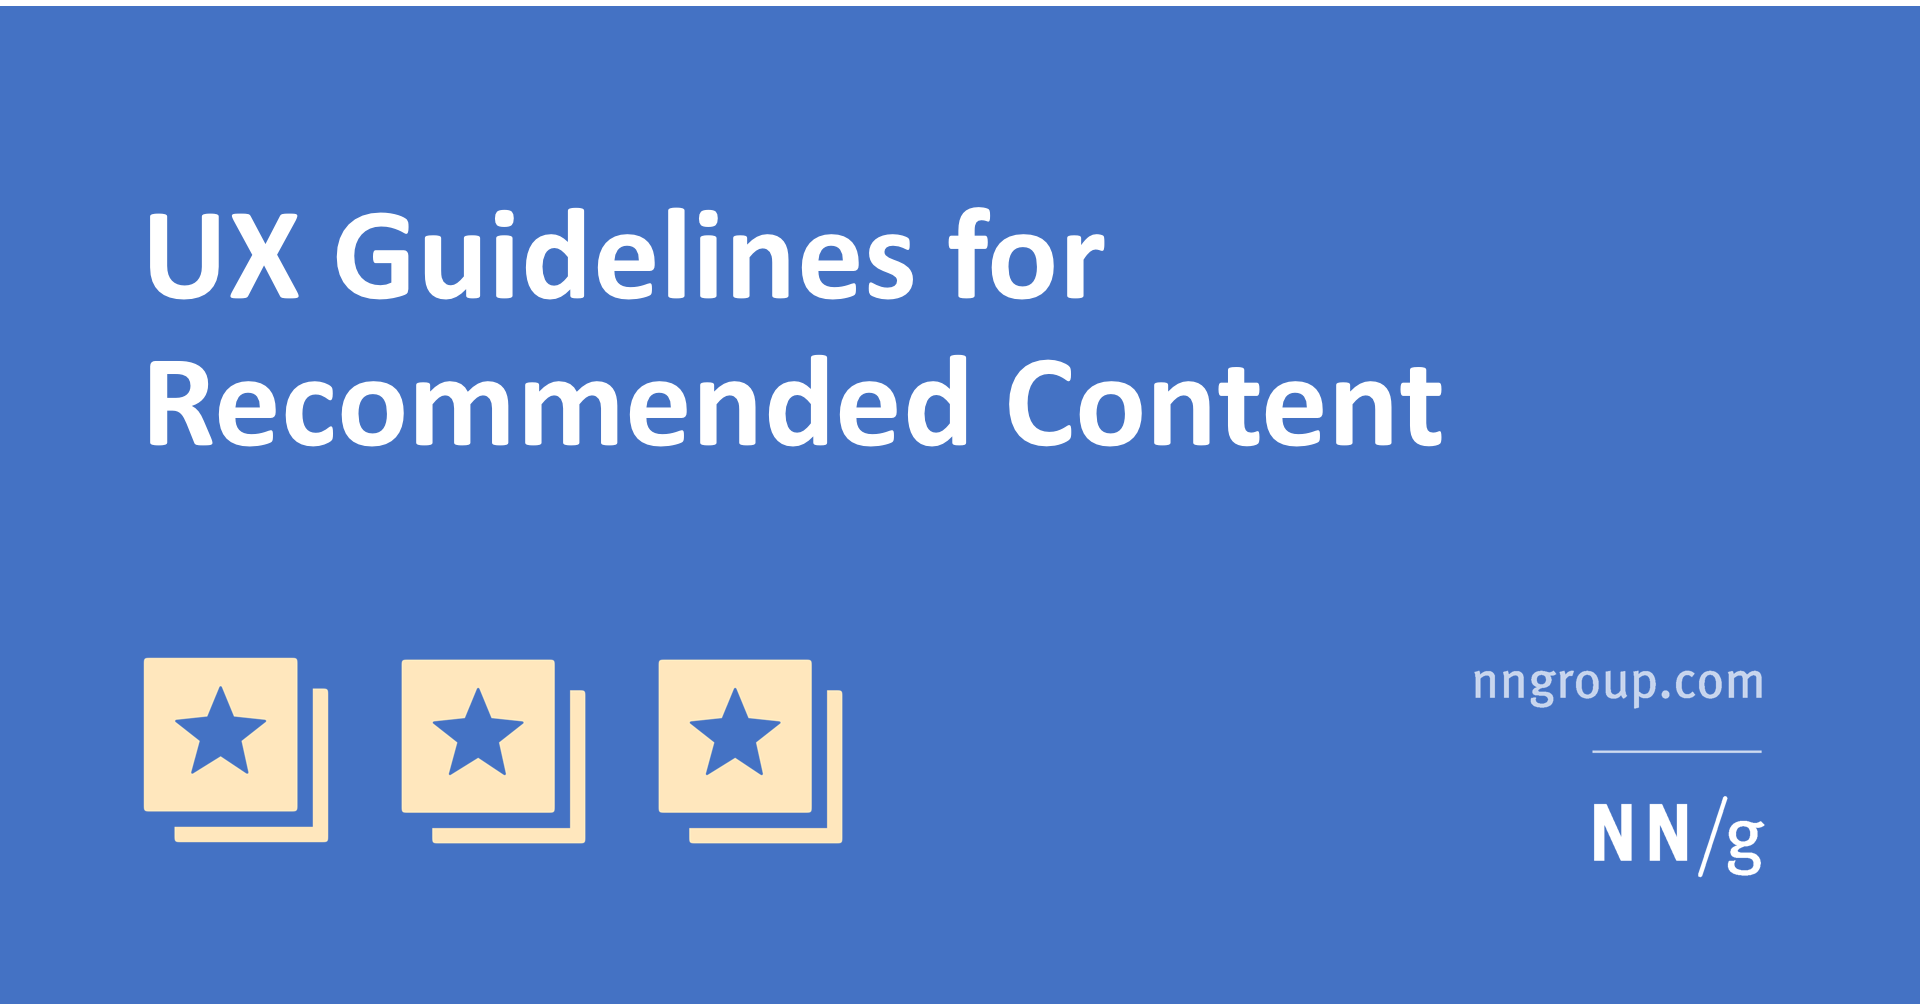 UX Guidelines for Recommended Content